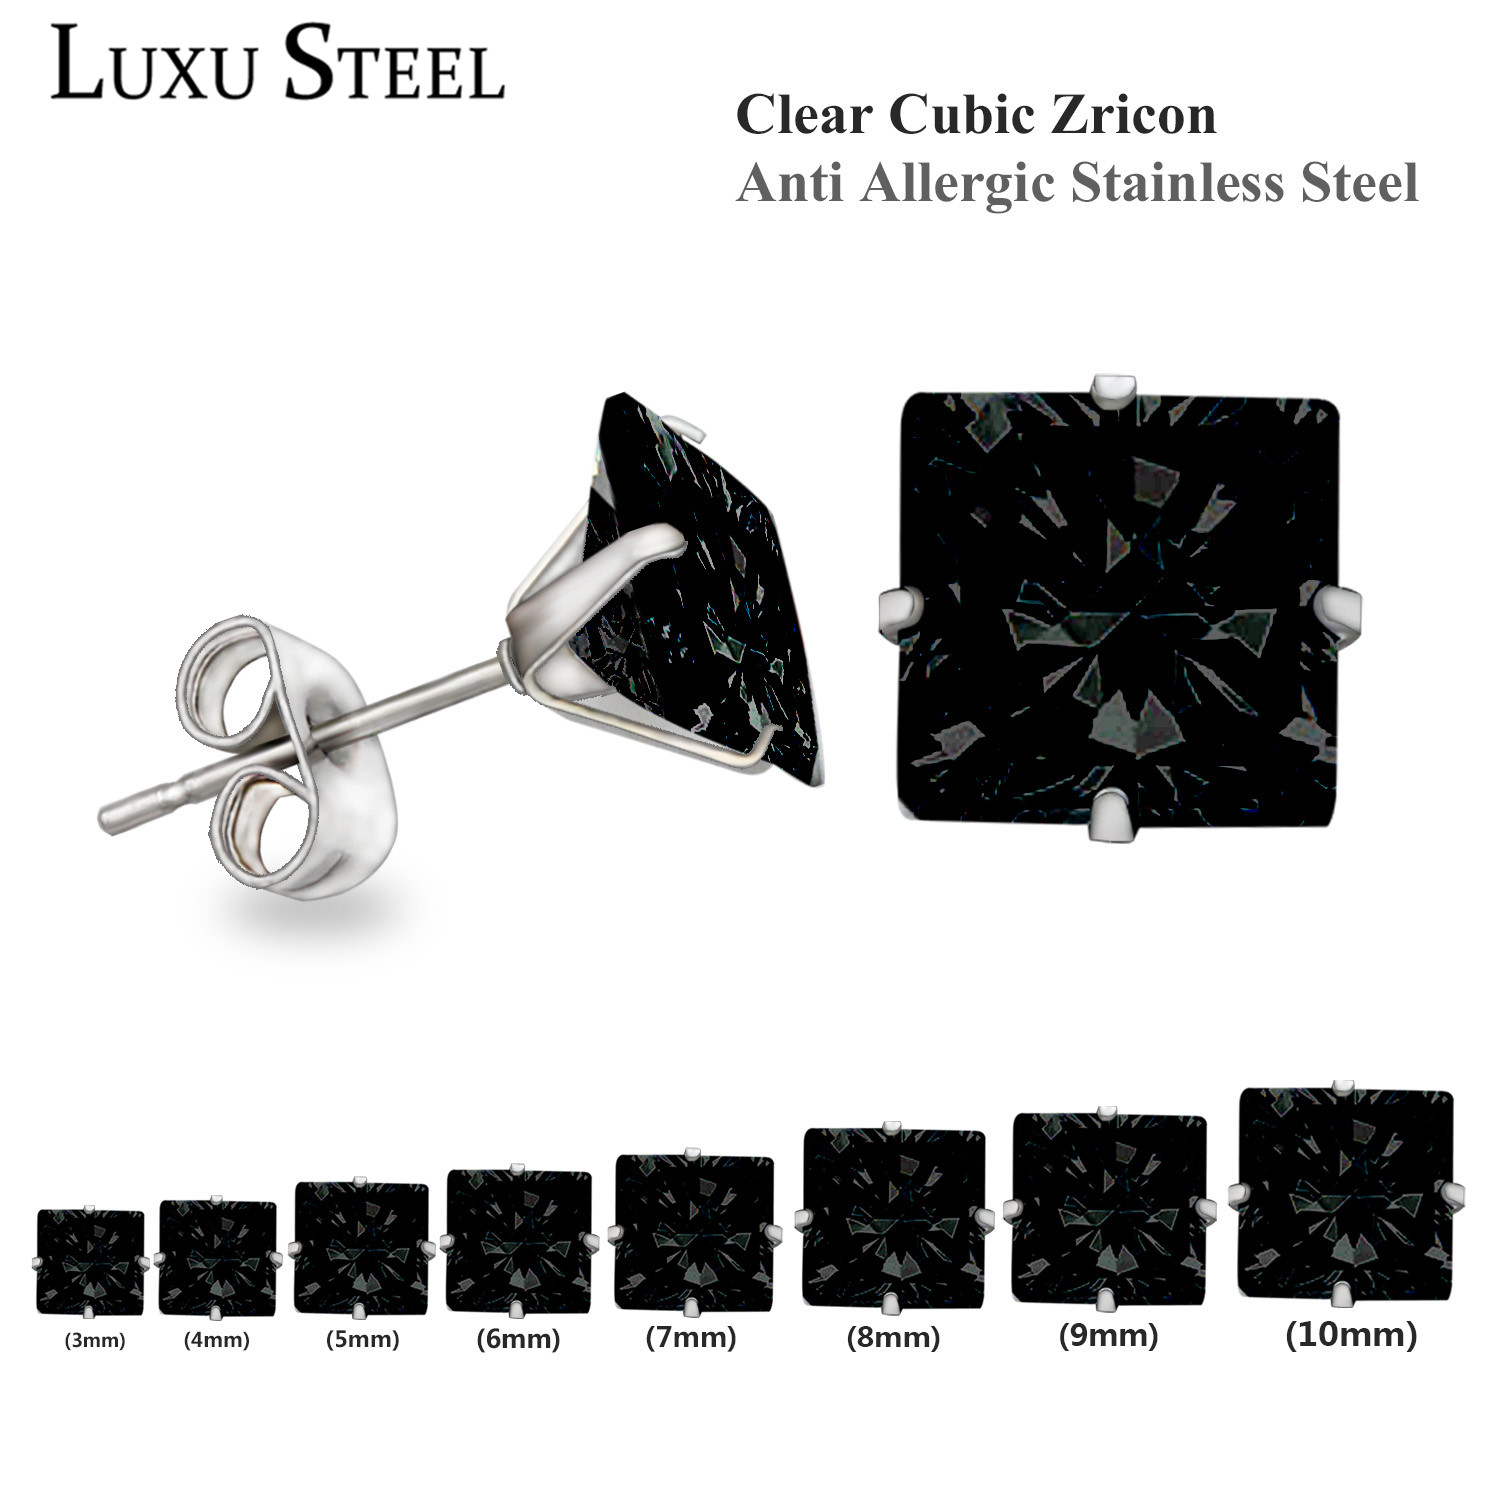 Stud Earrings,Brilliant Black Square Cut Cubic Zirconia Stainless Steel - Sizes 3mm To 10mm